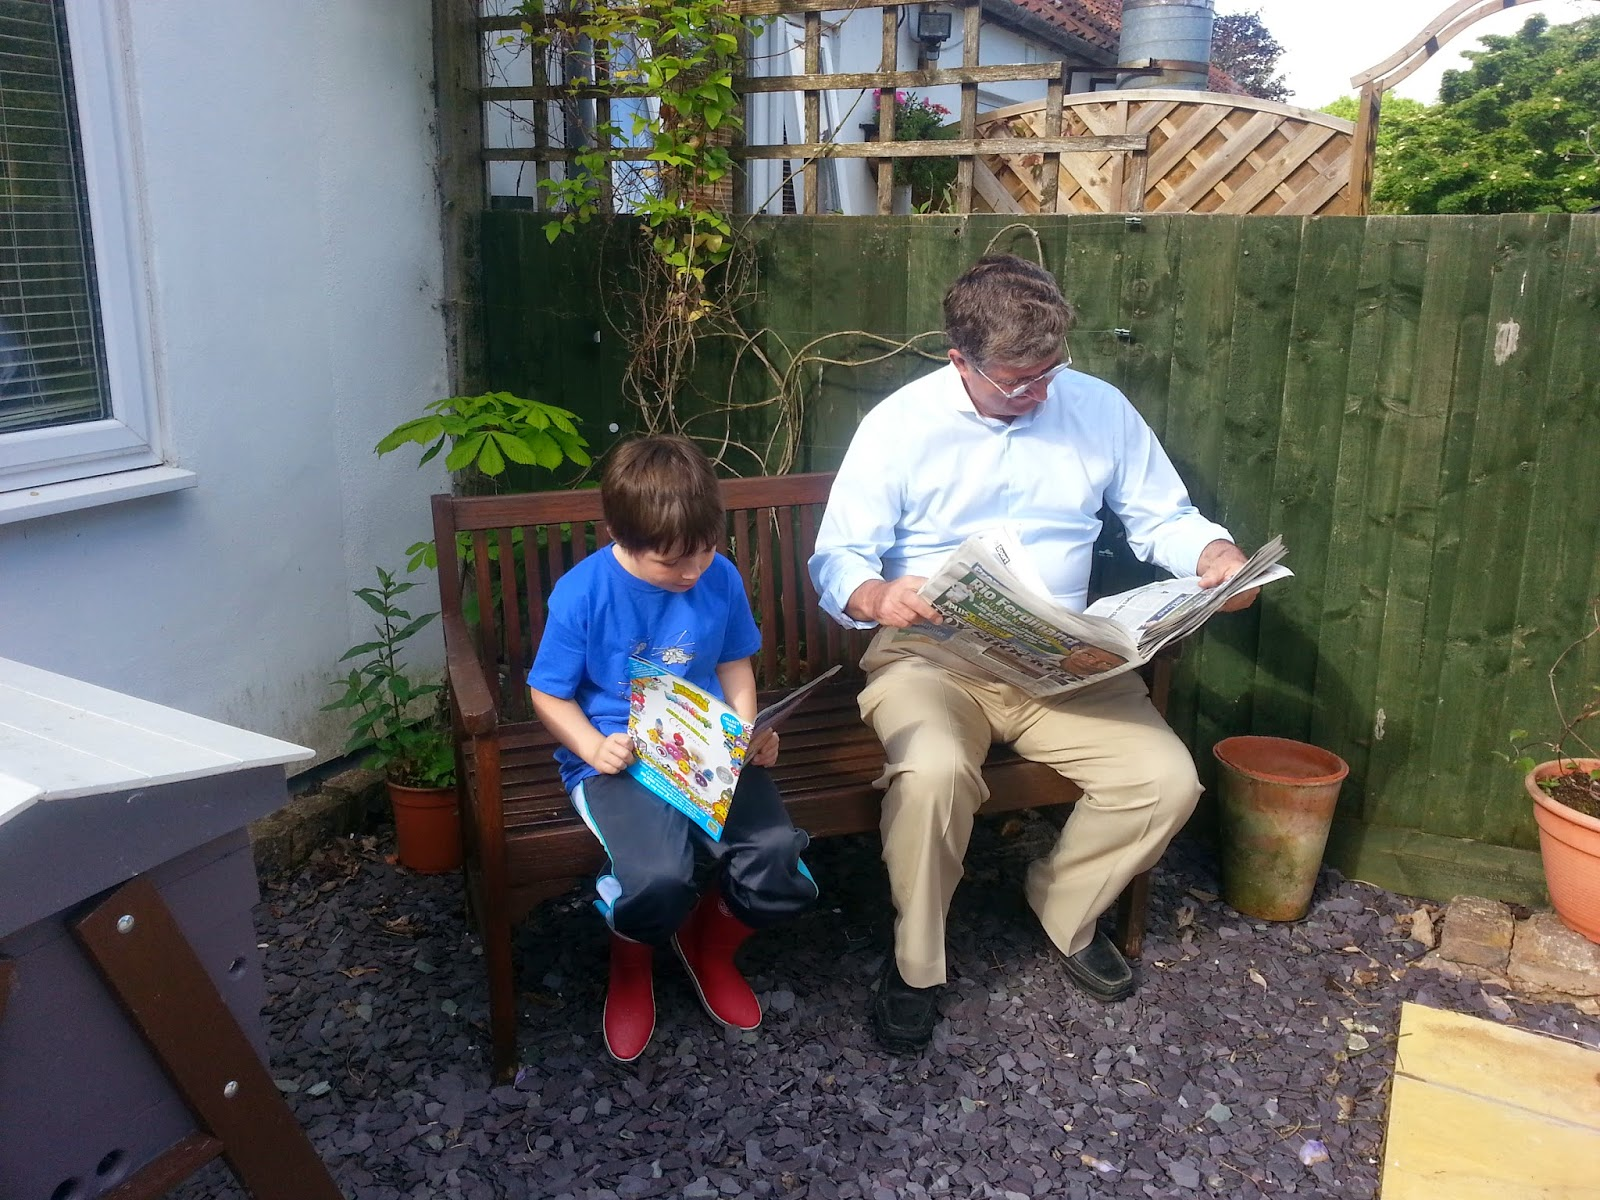 Grandfather and grandson reading newspapers side by side